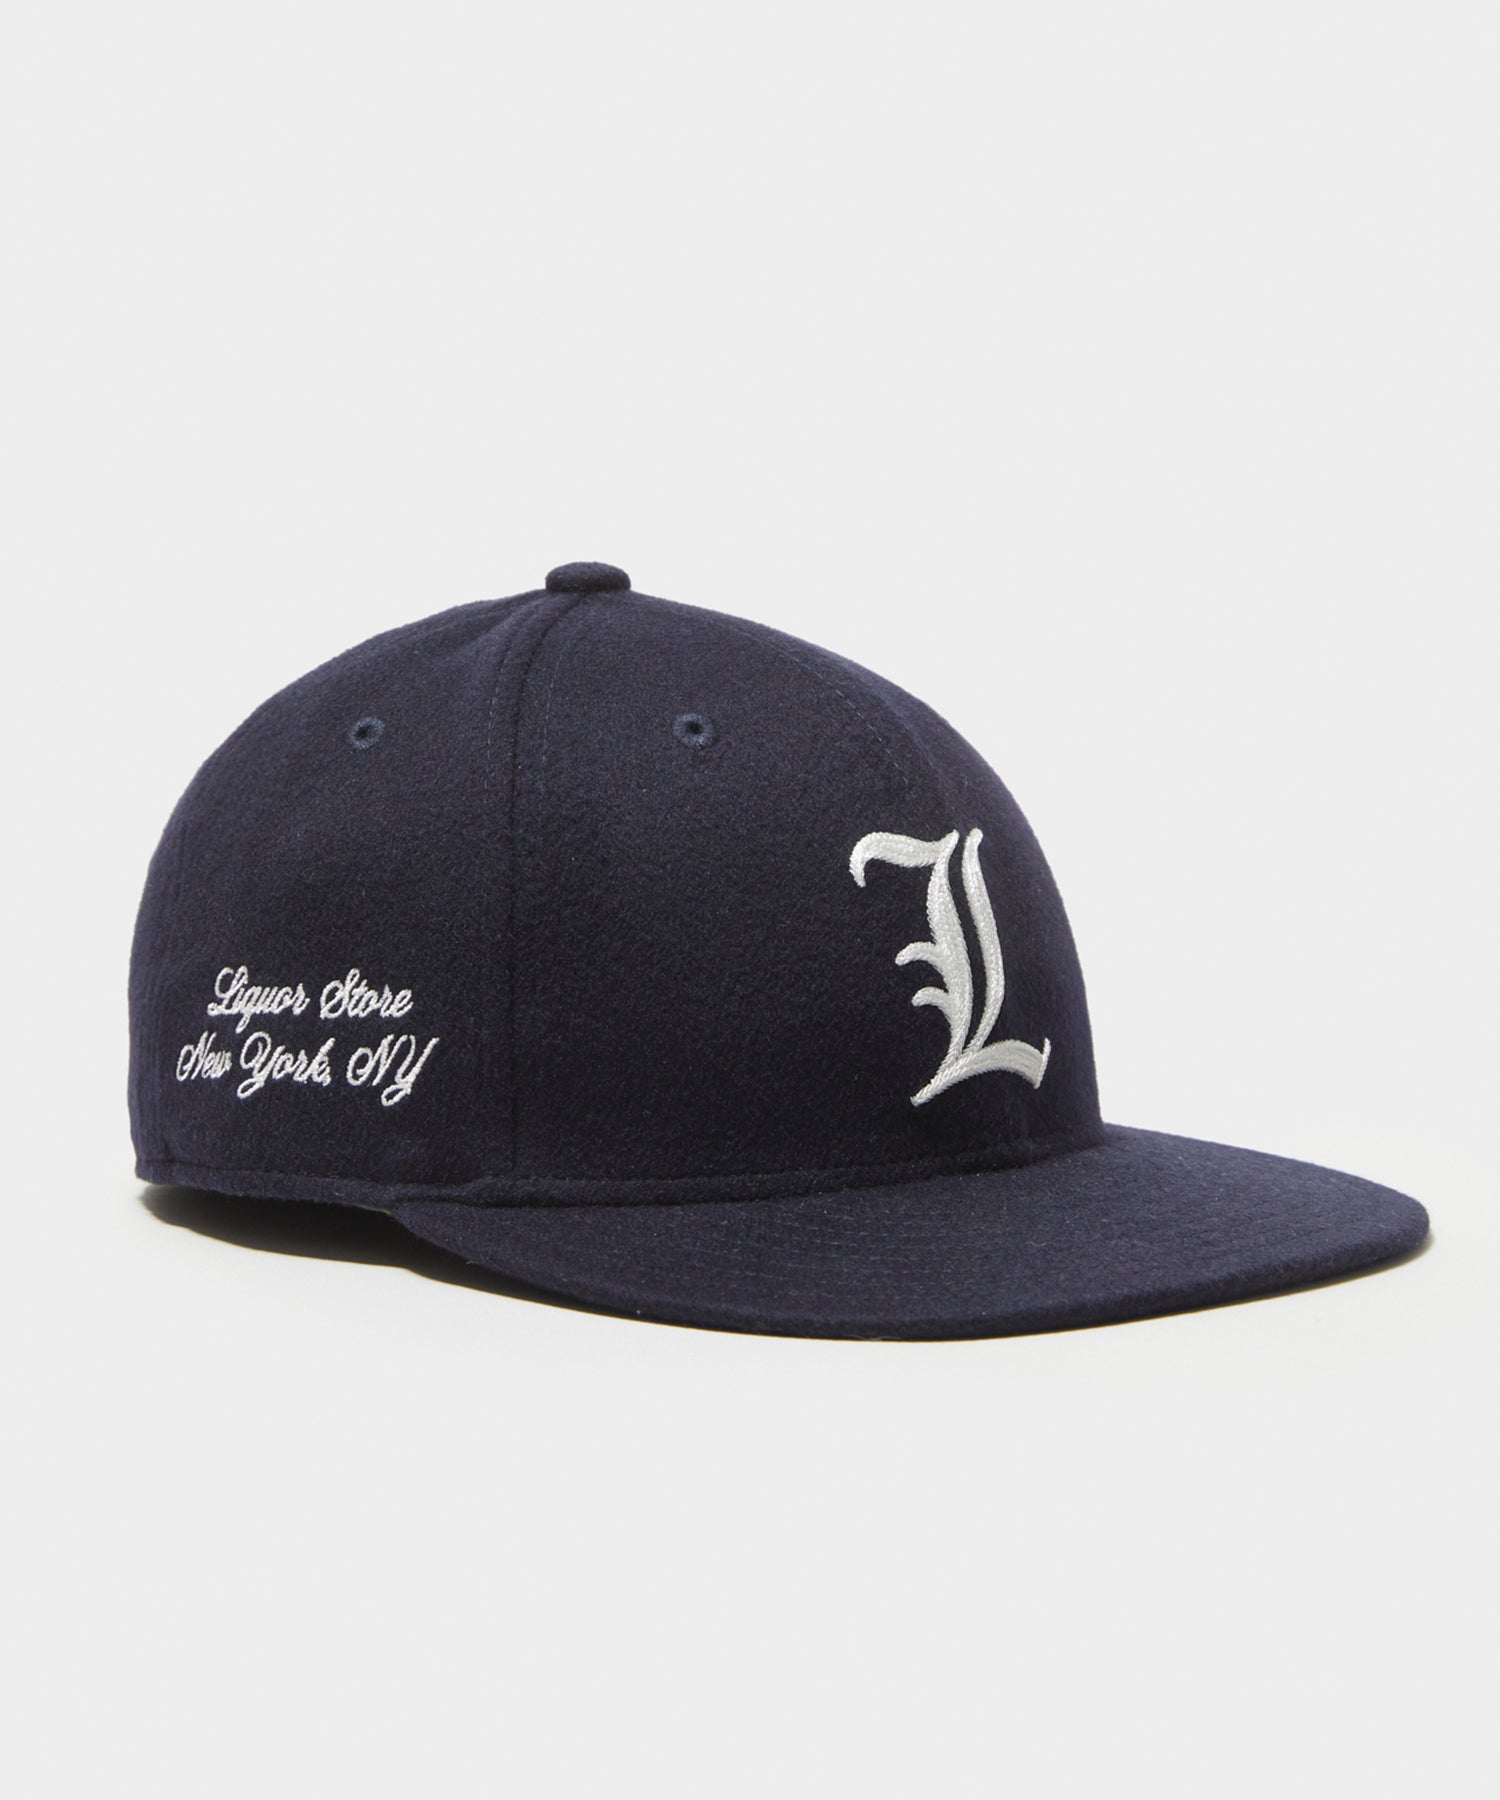 Todd Snyder + New Era Exclusive Cashmere Liquor Store Cap in Navy